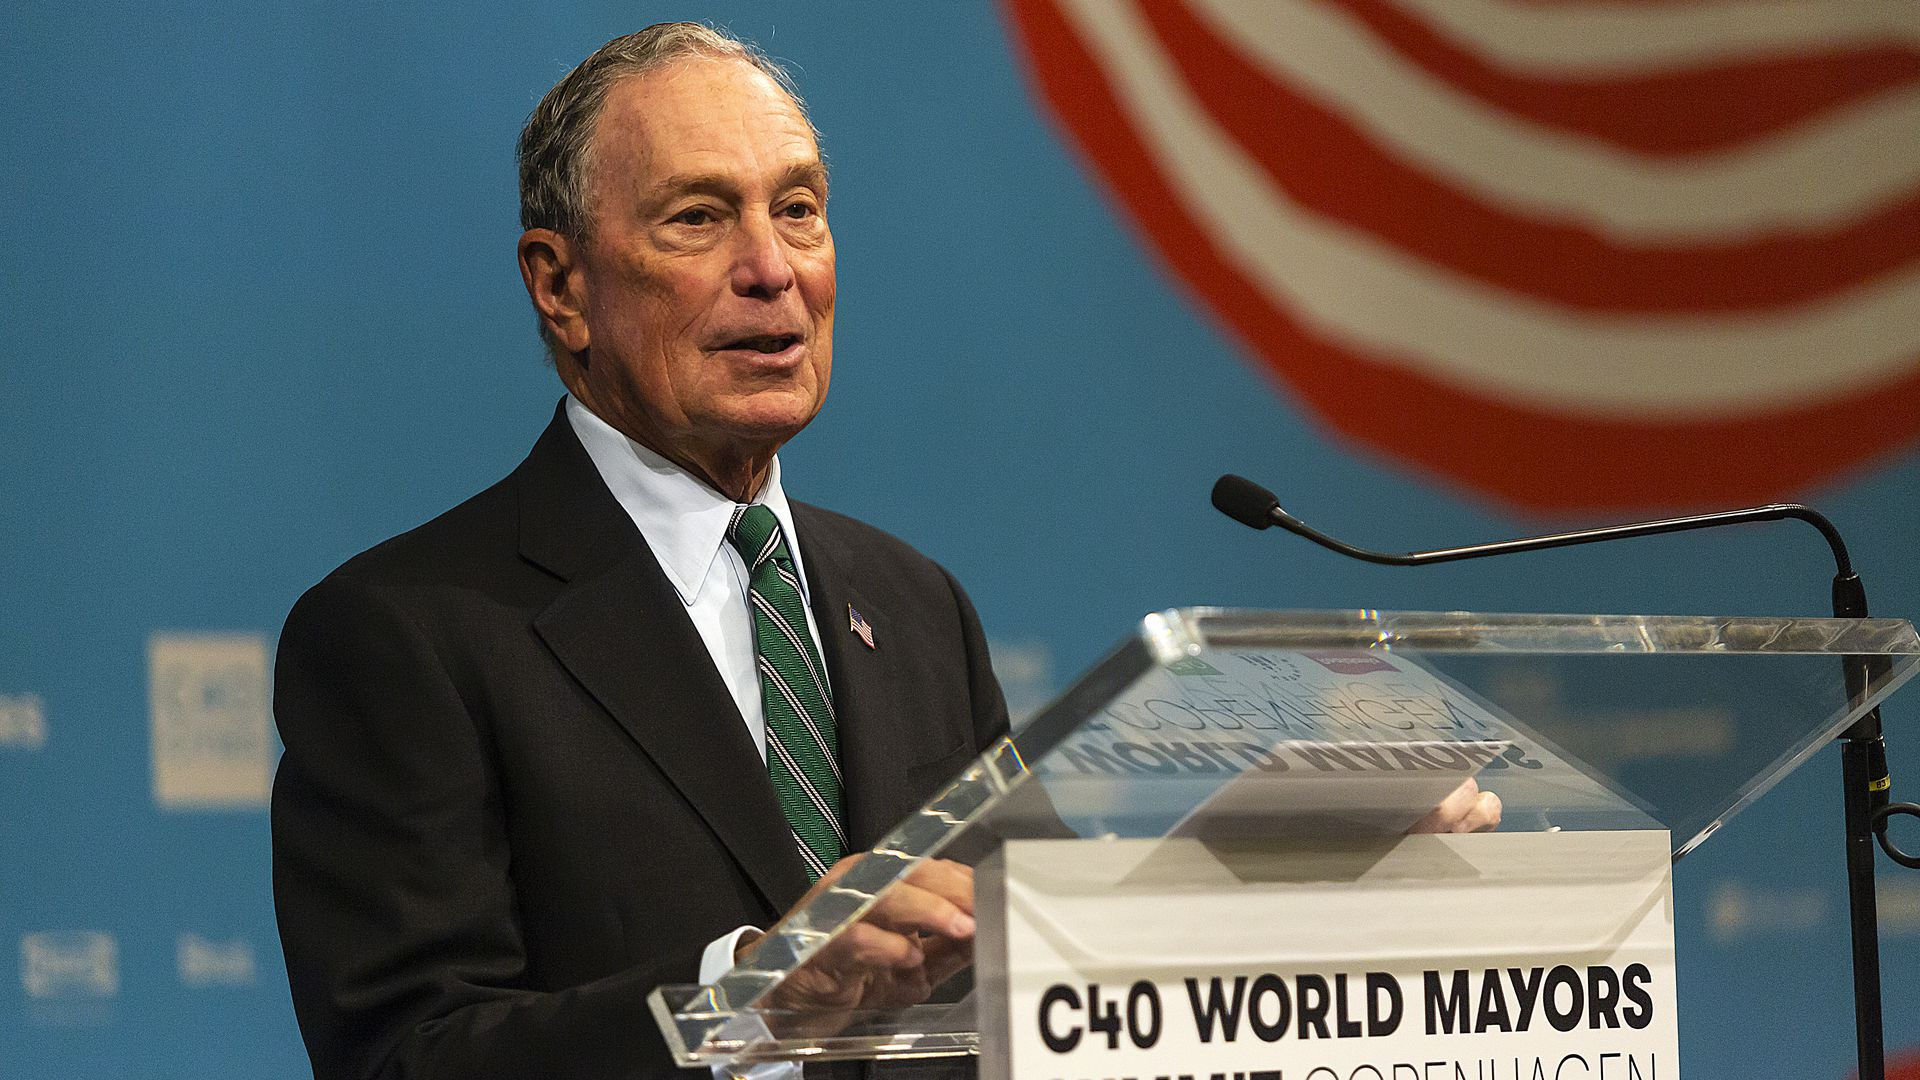 Bloomberg speaks at a press conference at the C40 World Mayors Summit